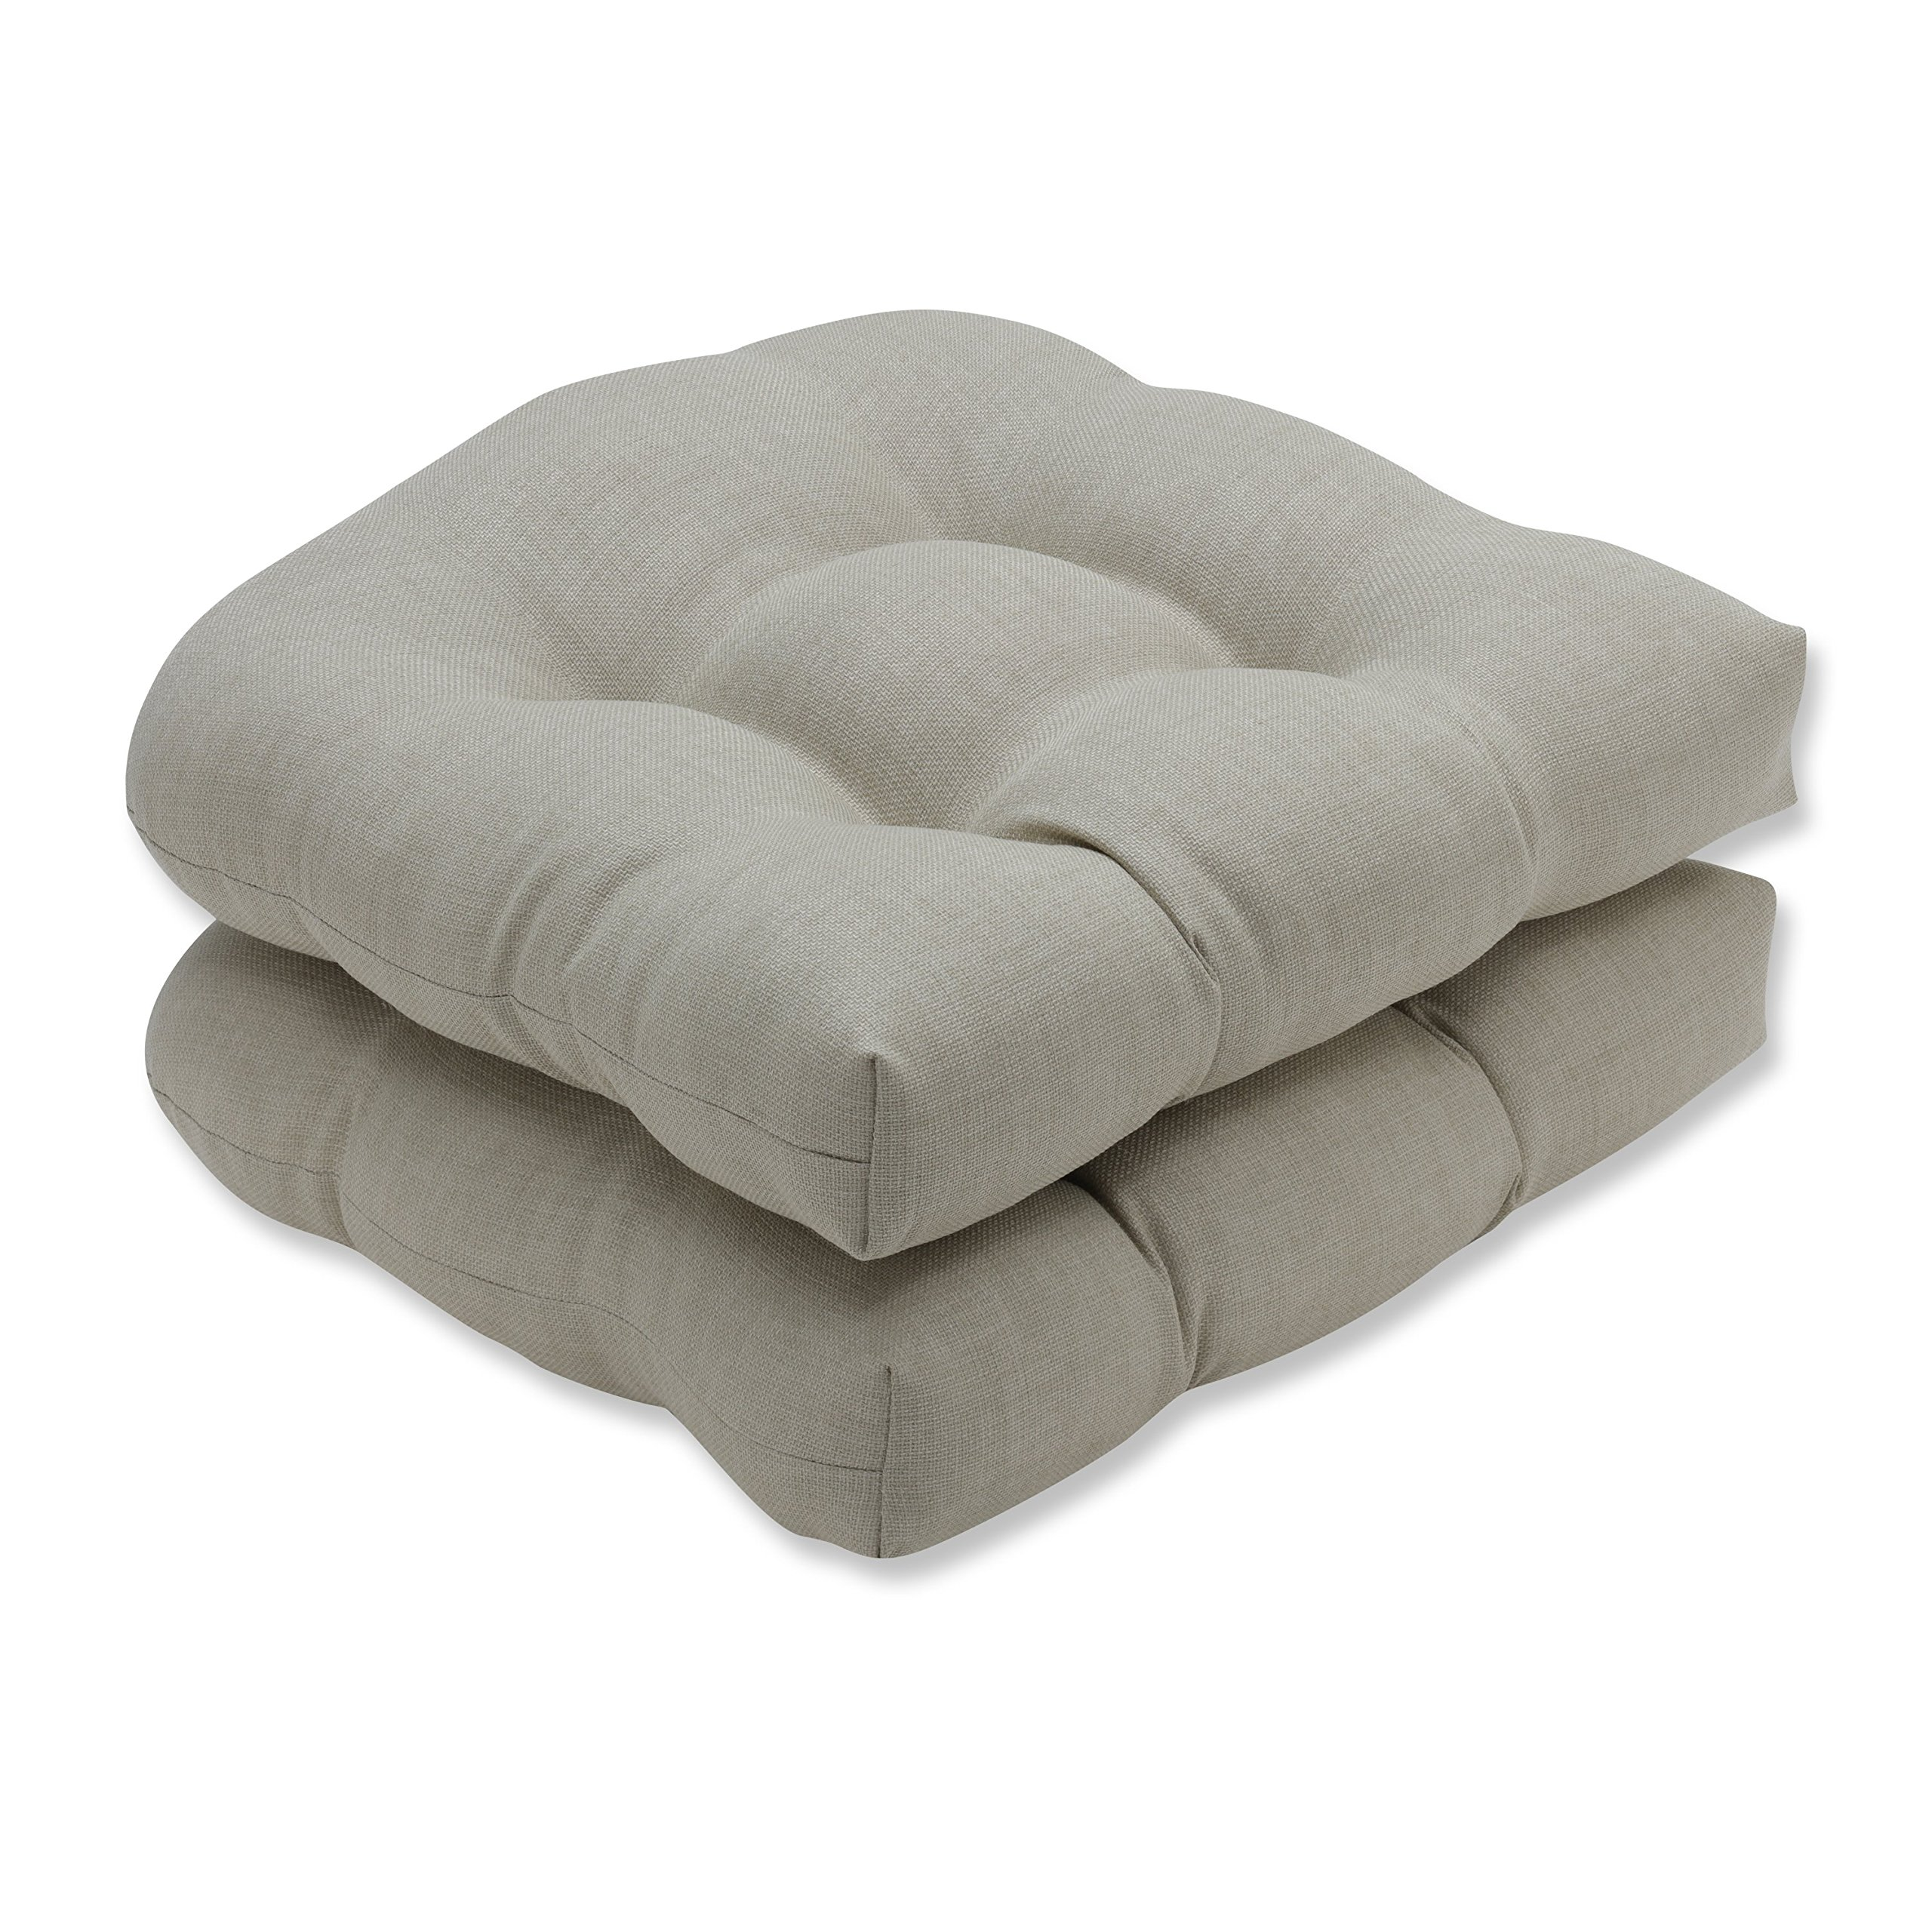 Pillow Perfect Outdoor/Indoor Rave Driftwood Wicker Seat Cushion (Set of 2)